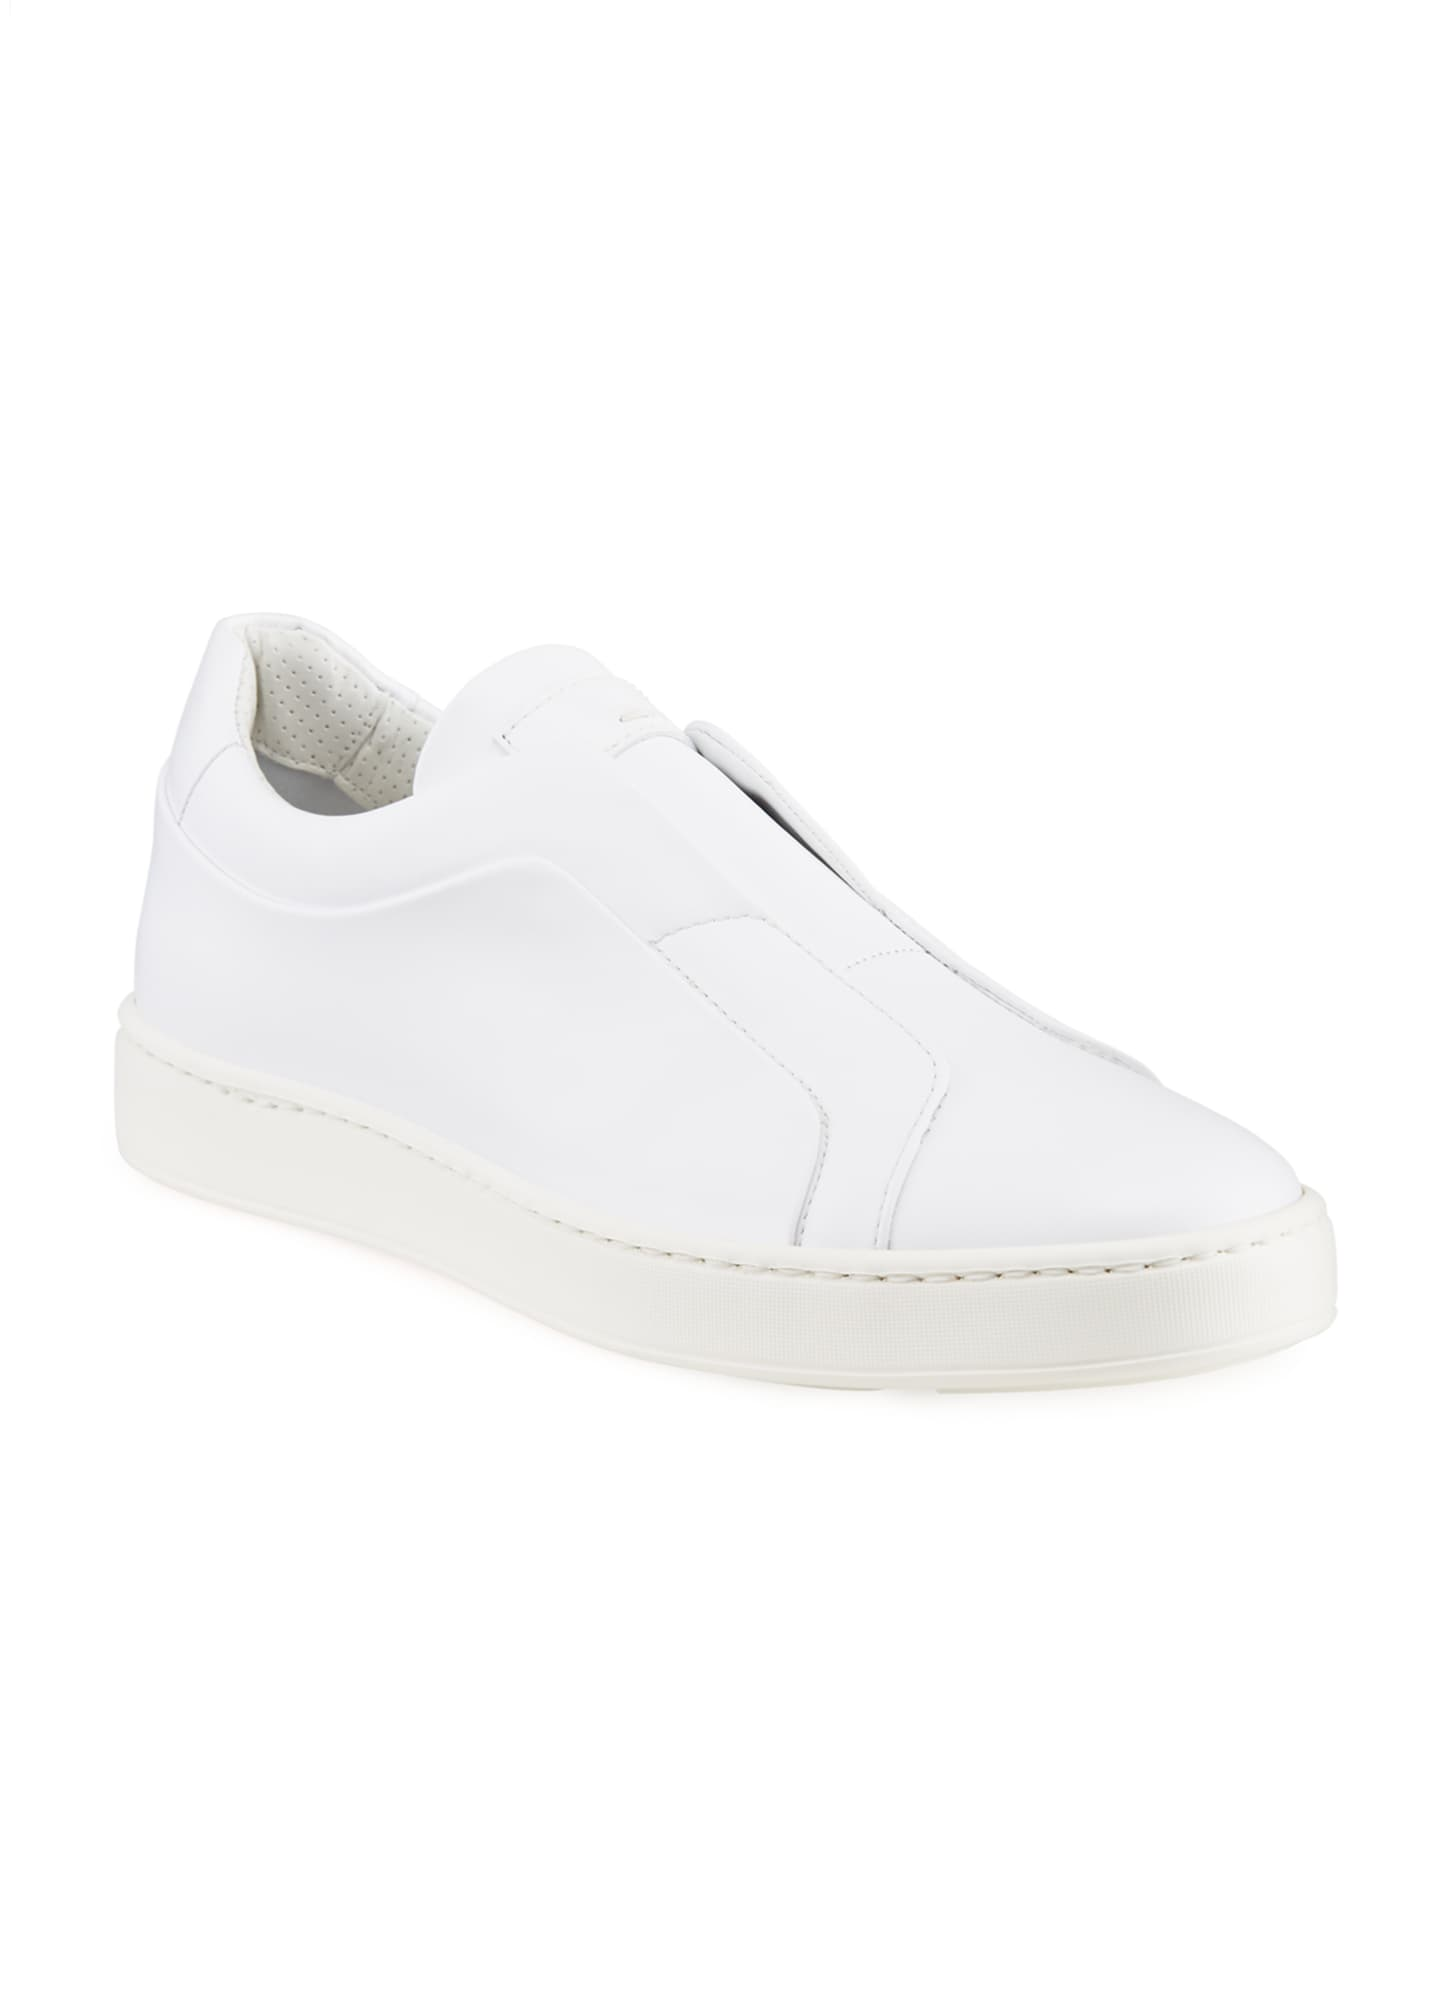 Image 2 of 4: Men's Pass Soft Leather Slip-On Sneakers